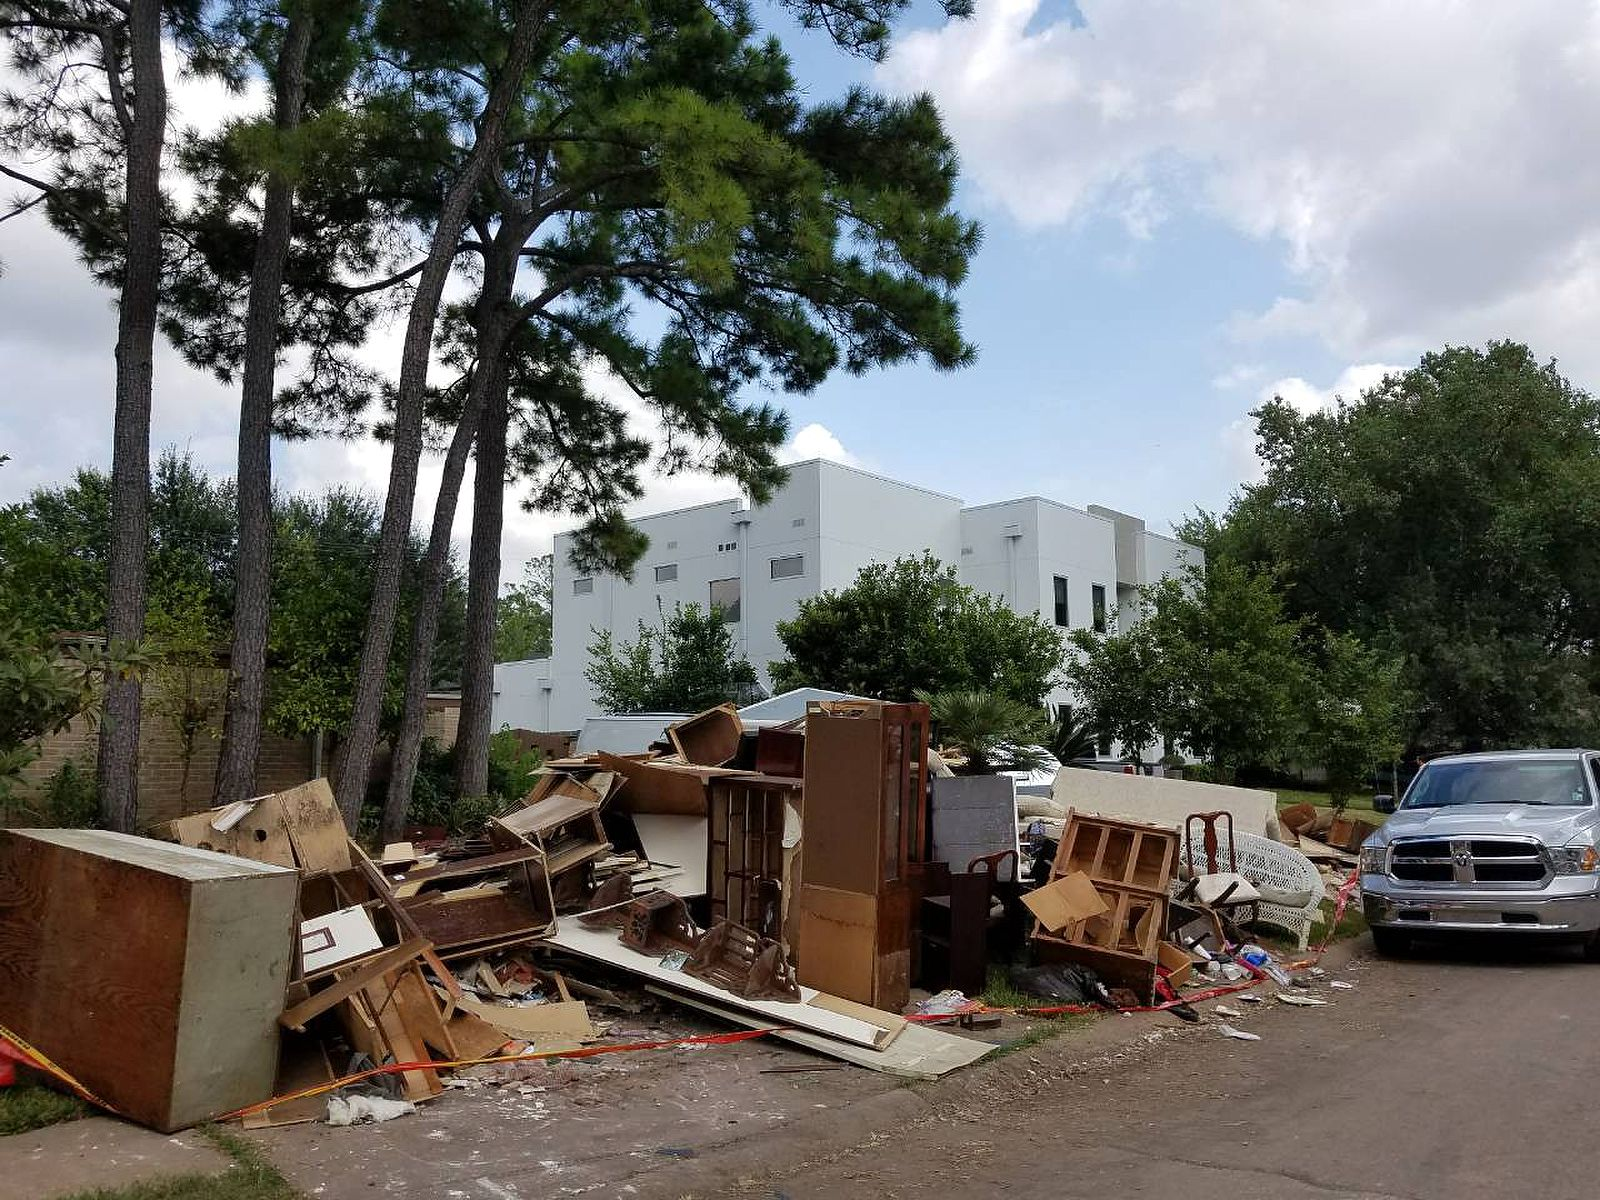 harvey damage 5 (05)